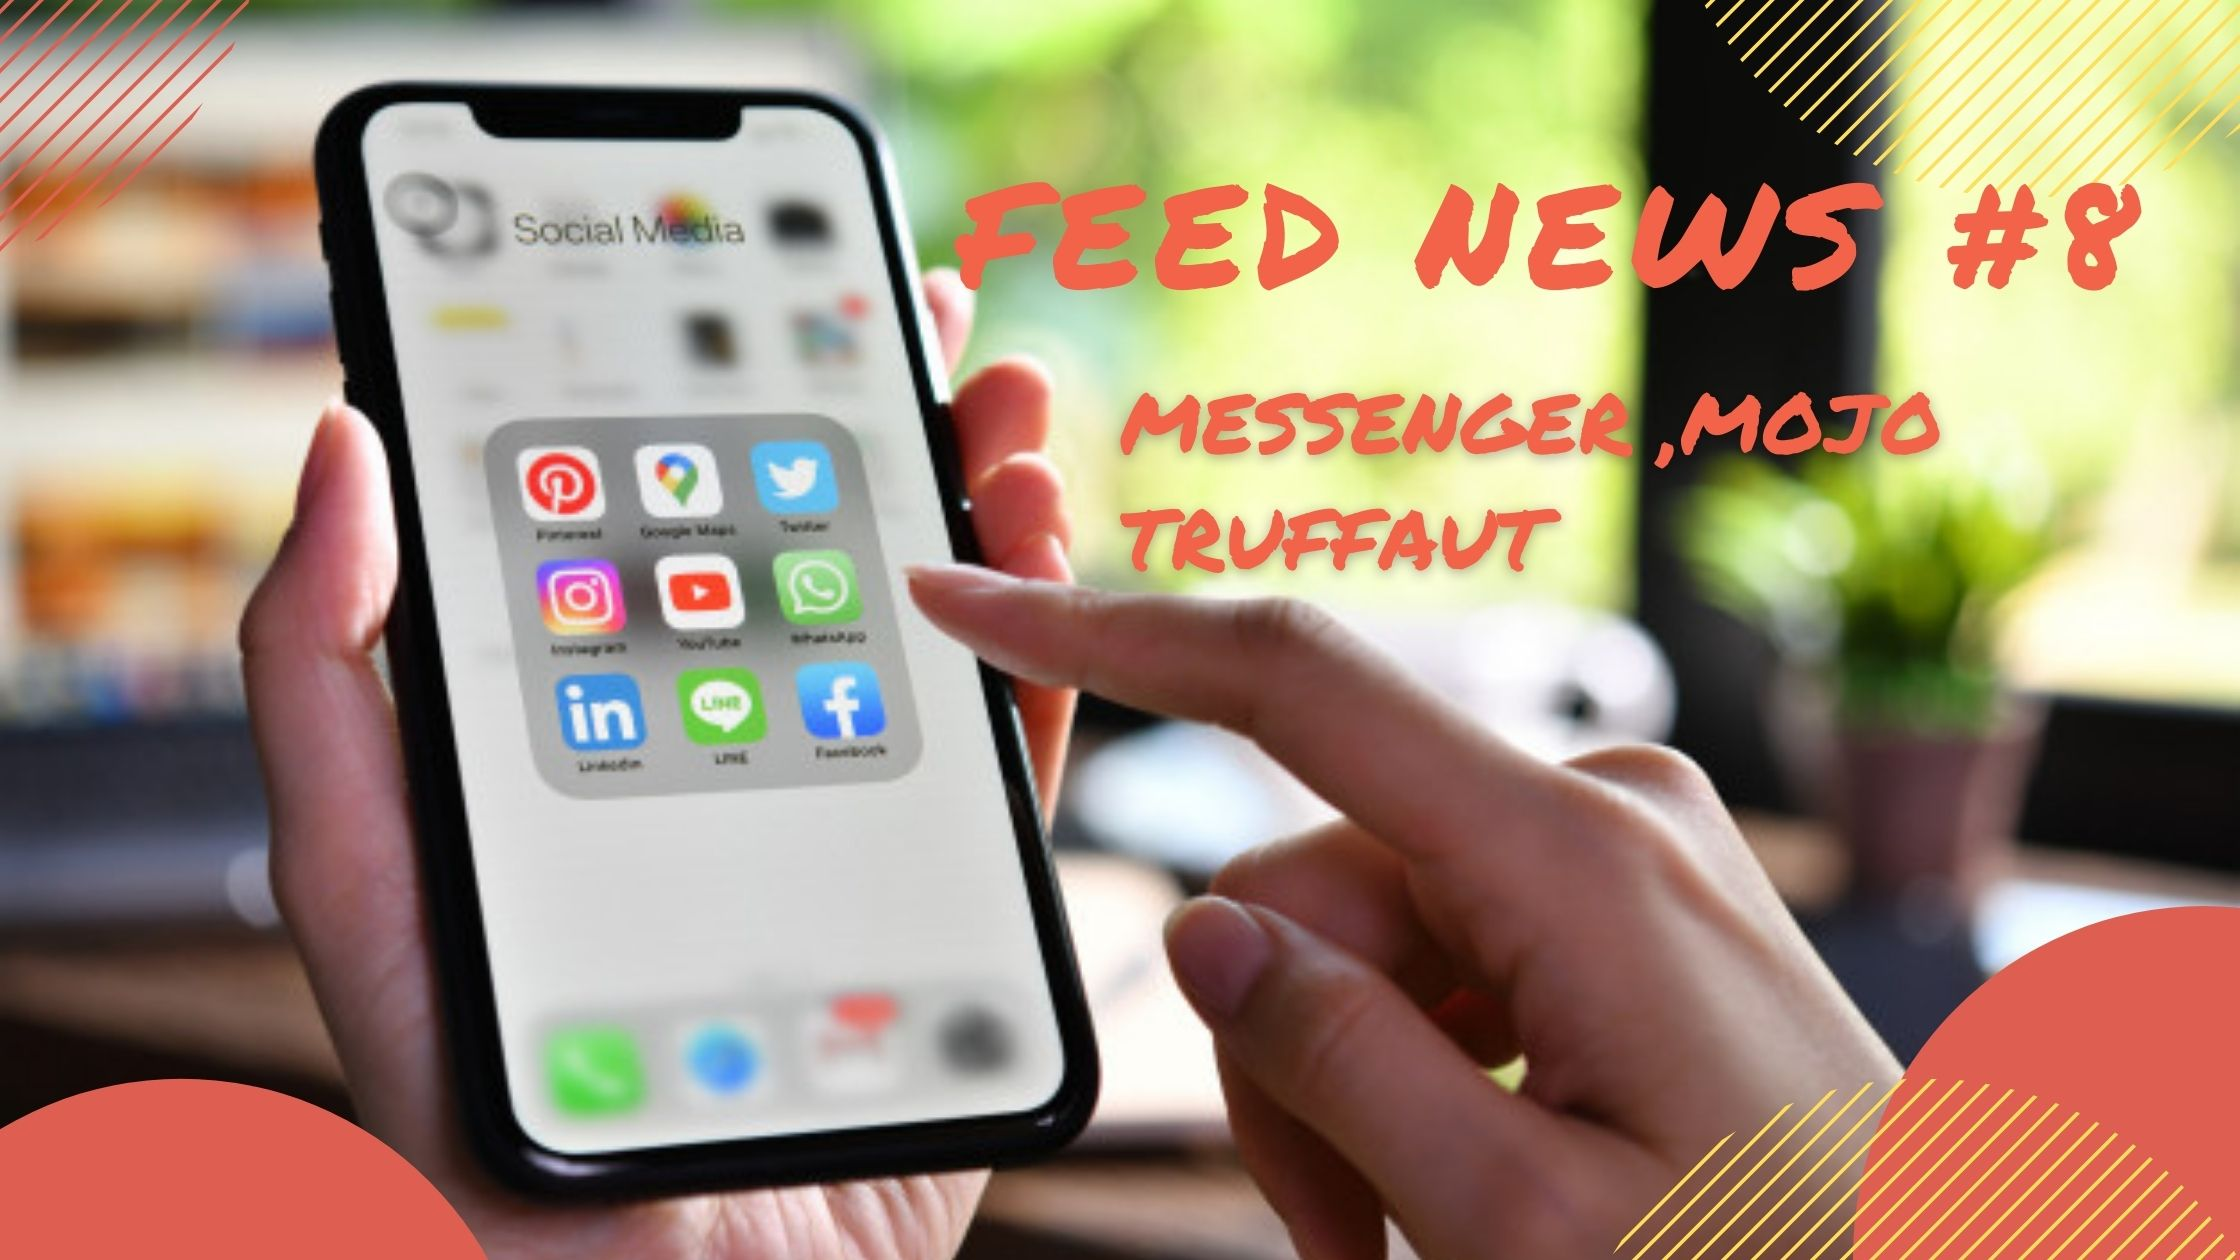 Feed News #8 Octobre : Messenger, Mojo, Truffaut